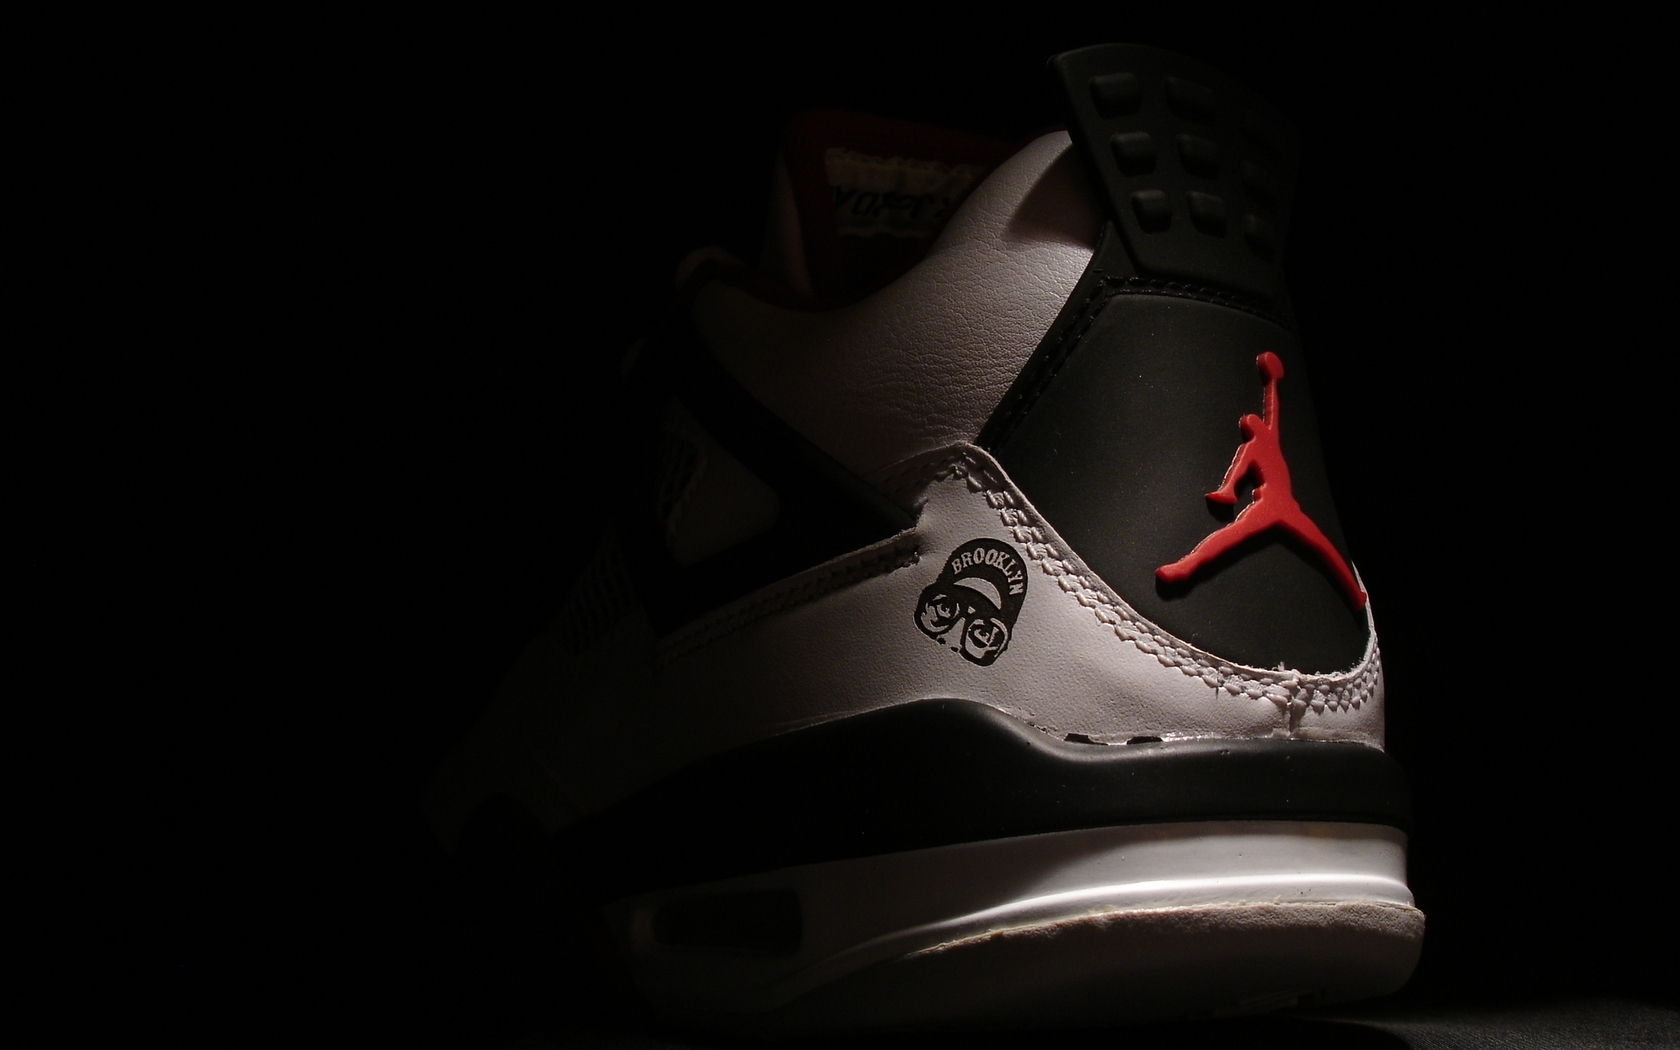 Jordan Shoes Wallpapers